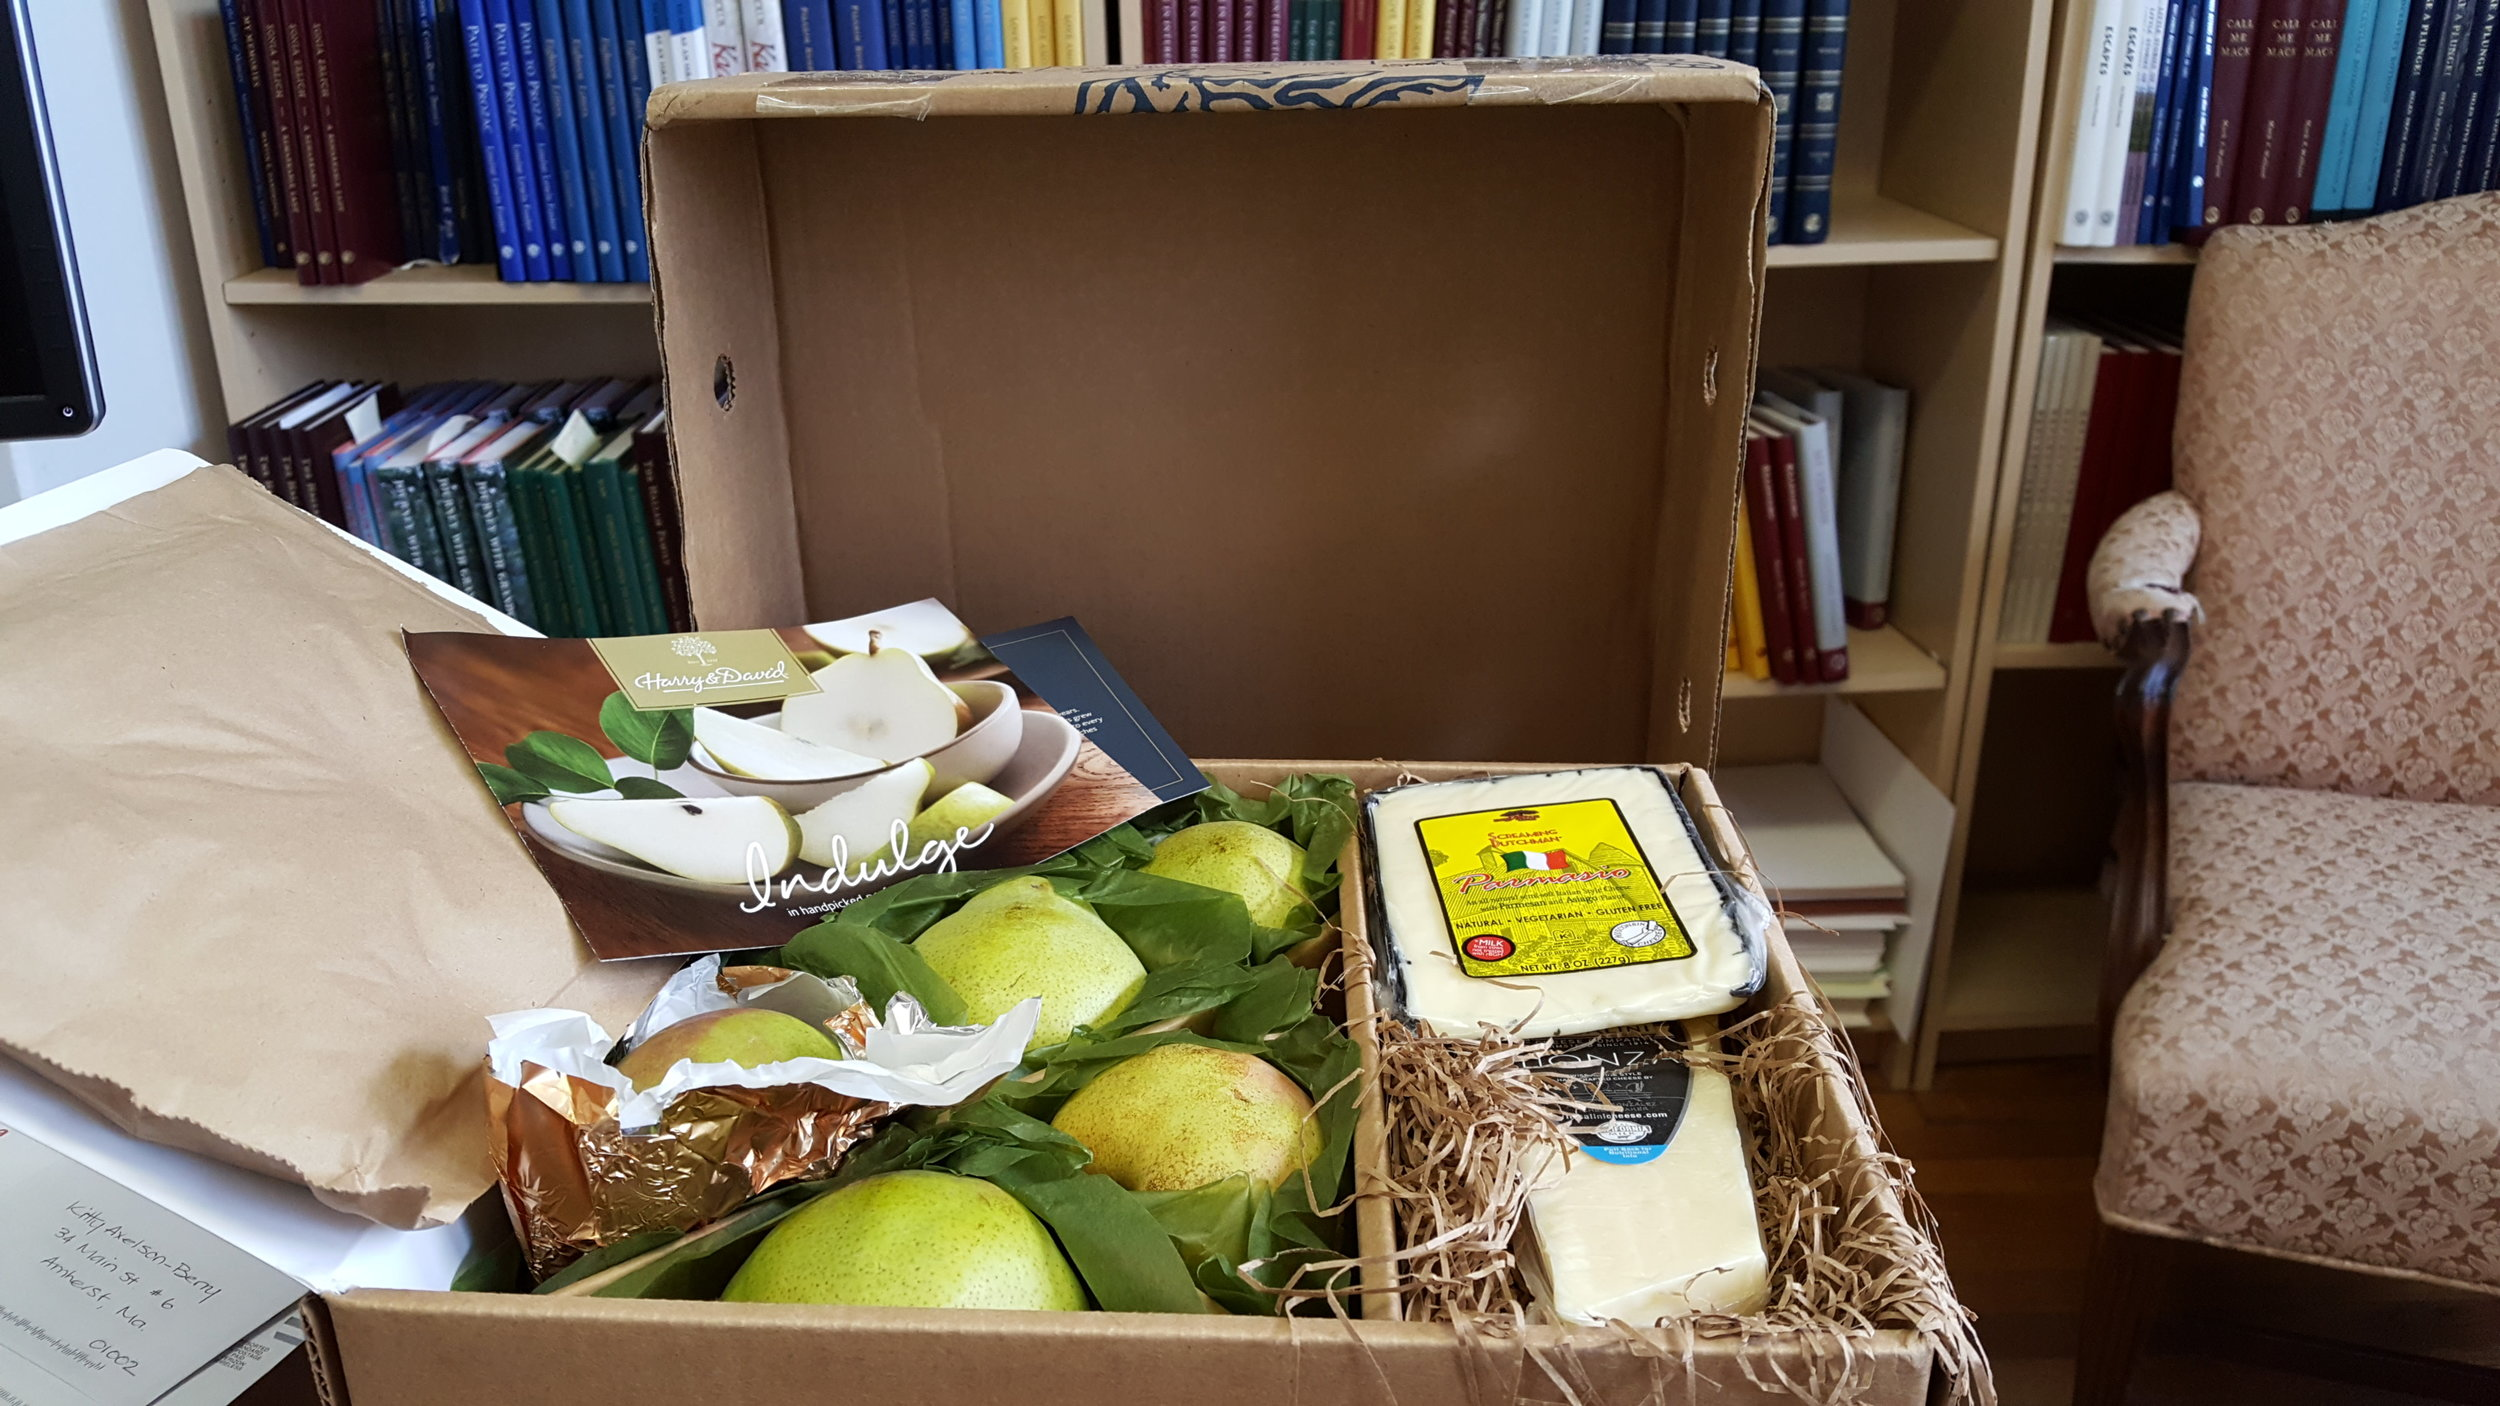 A client's gift of scrumptious pears and cheeses after his book was done!